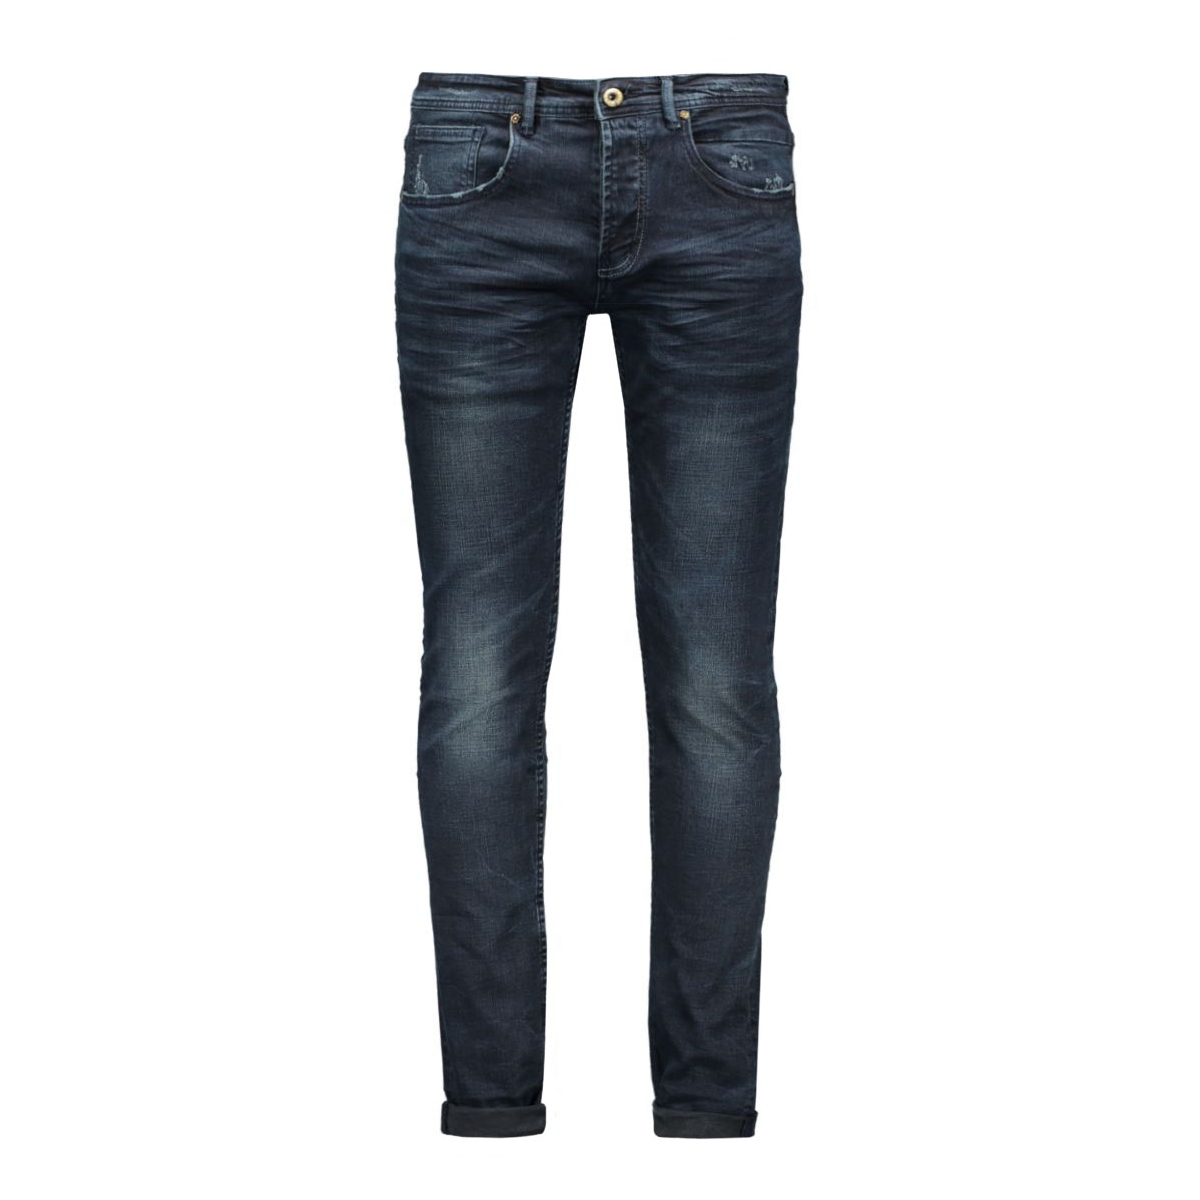 hw16.3.5631 connor circle of trust jeans dark used sonic